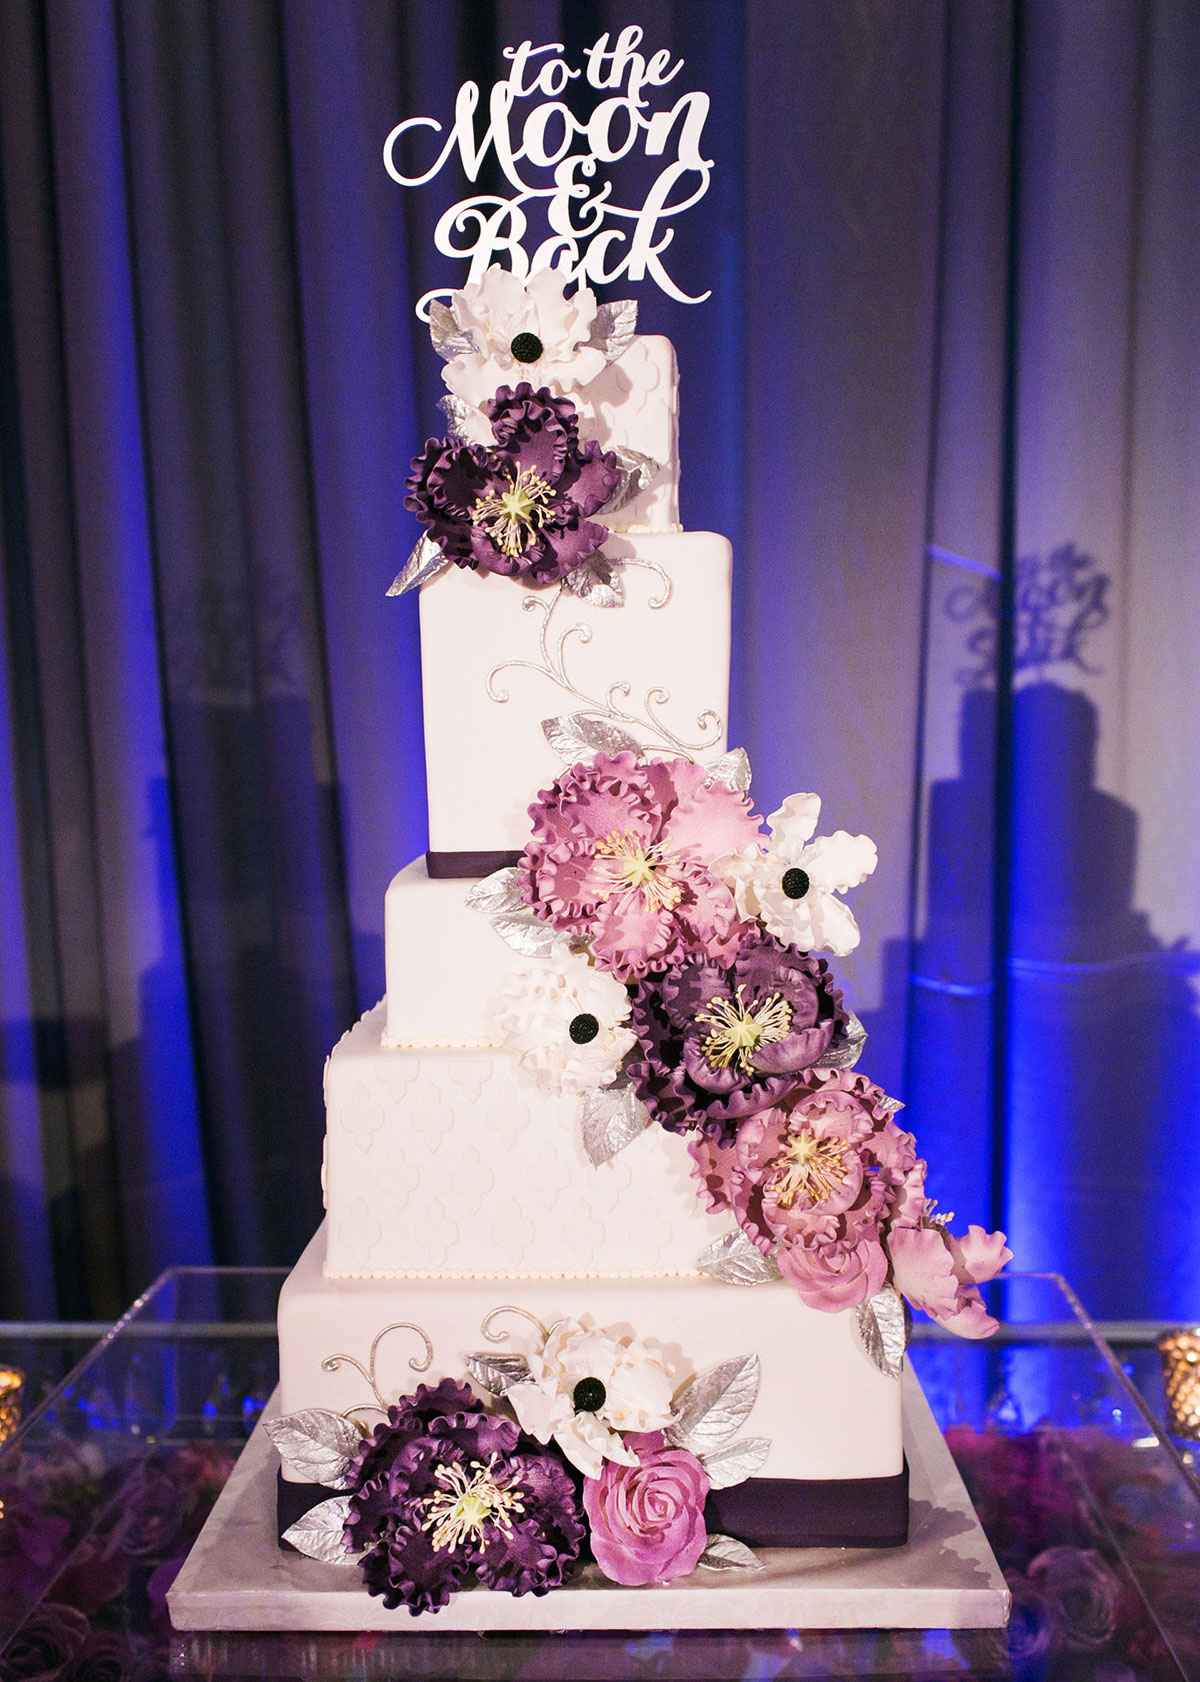 White square wedding cake with purple sugar flowers